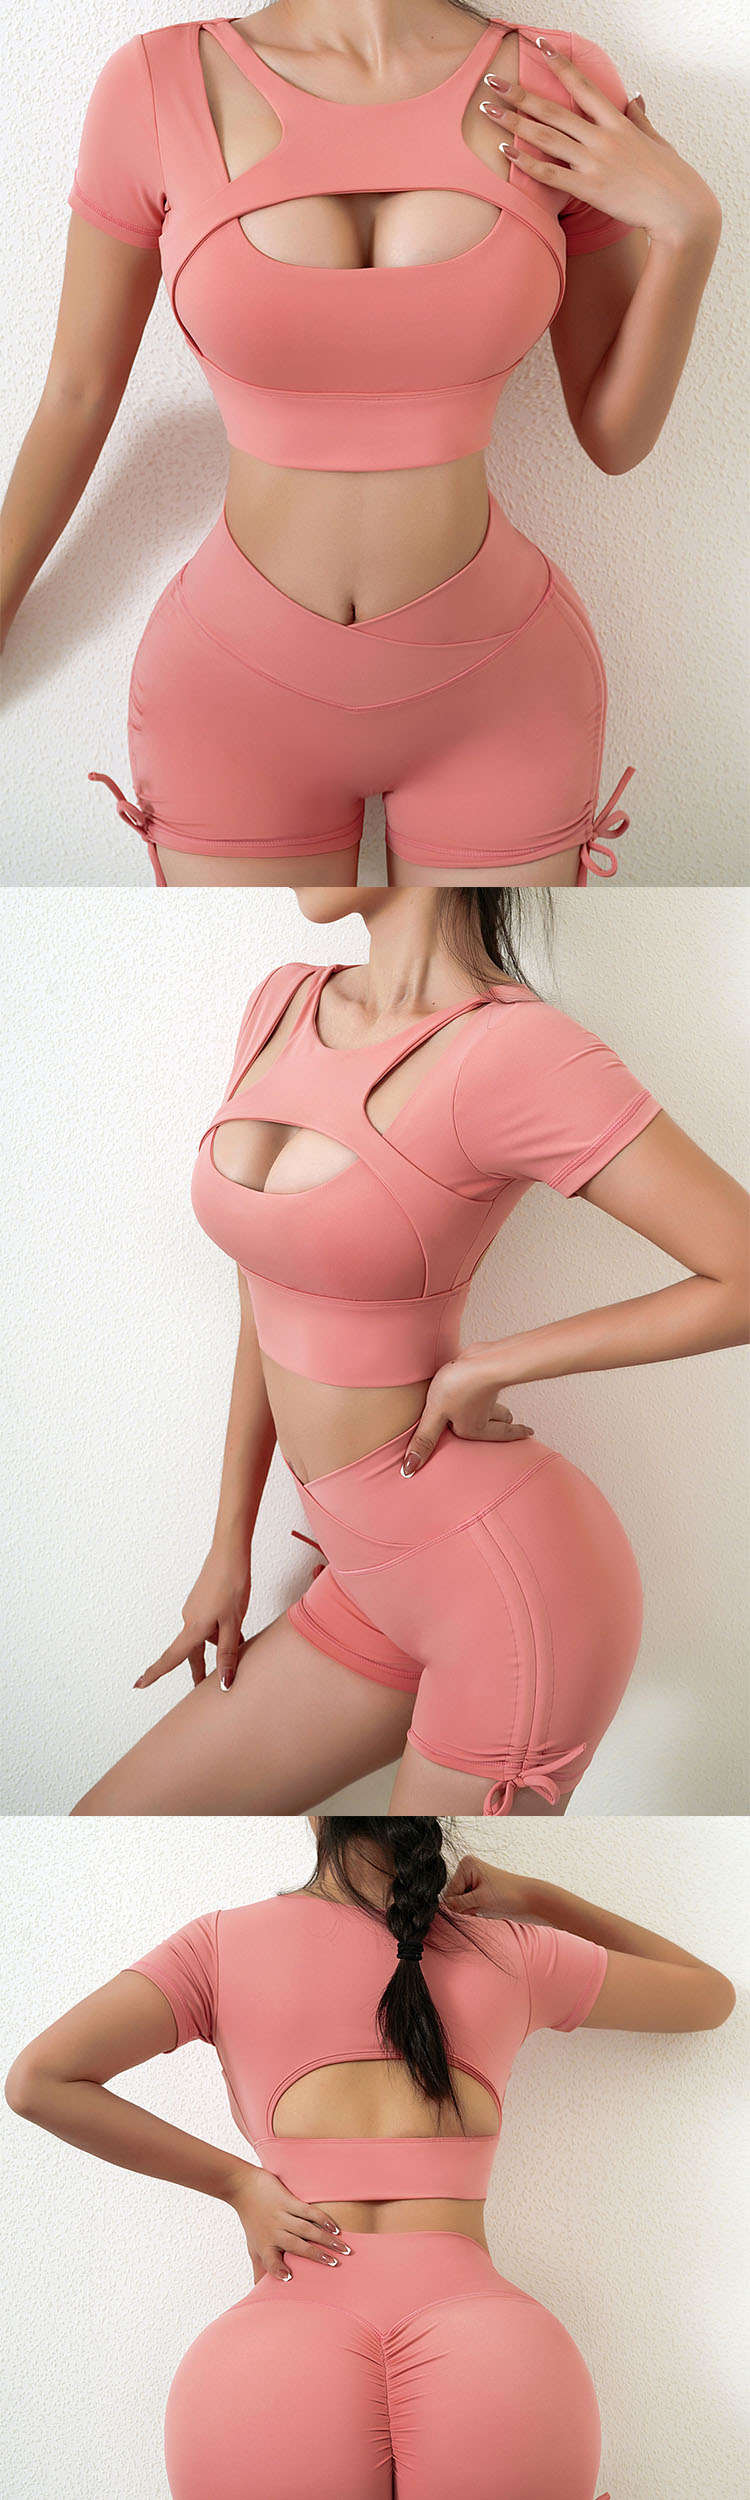 The sexy buttocks design adds a stylish highlight to the body shape.